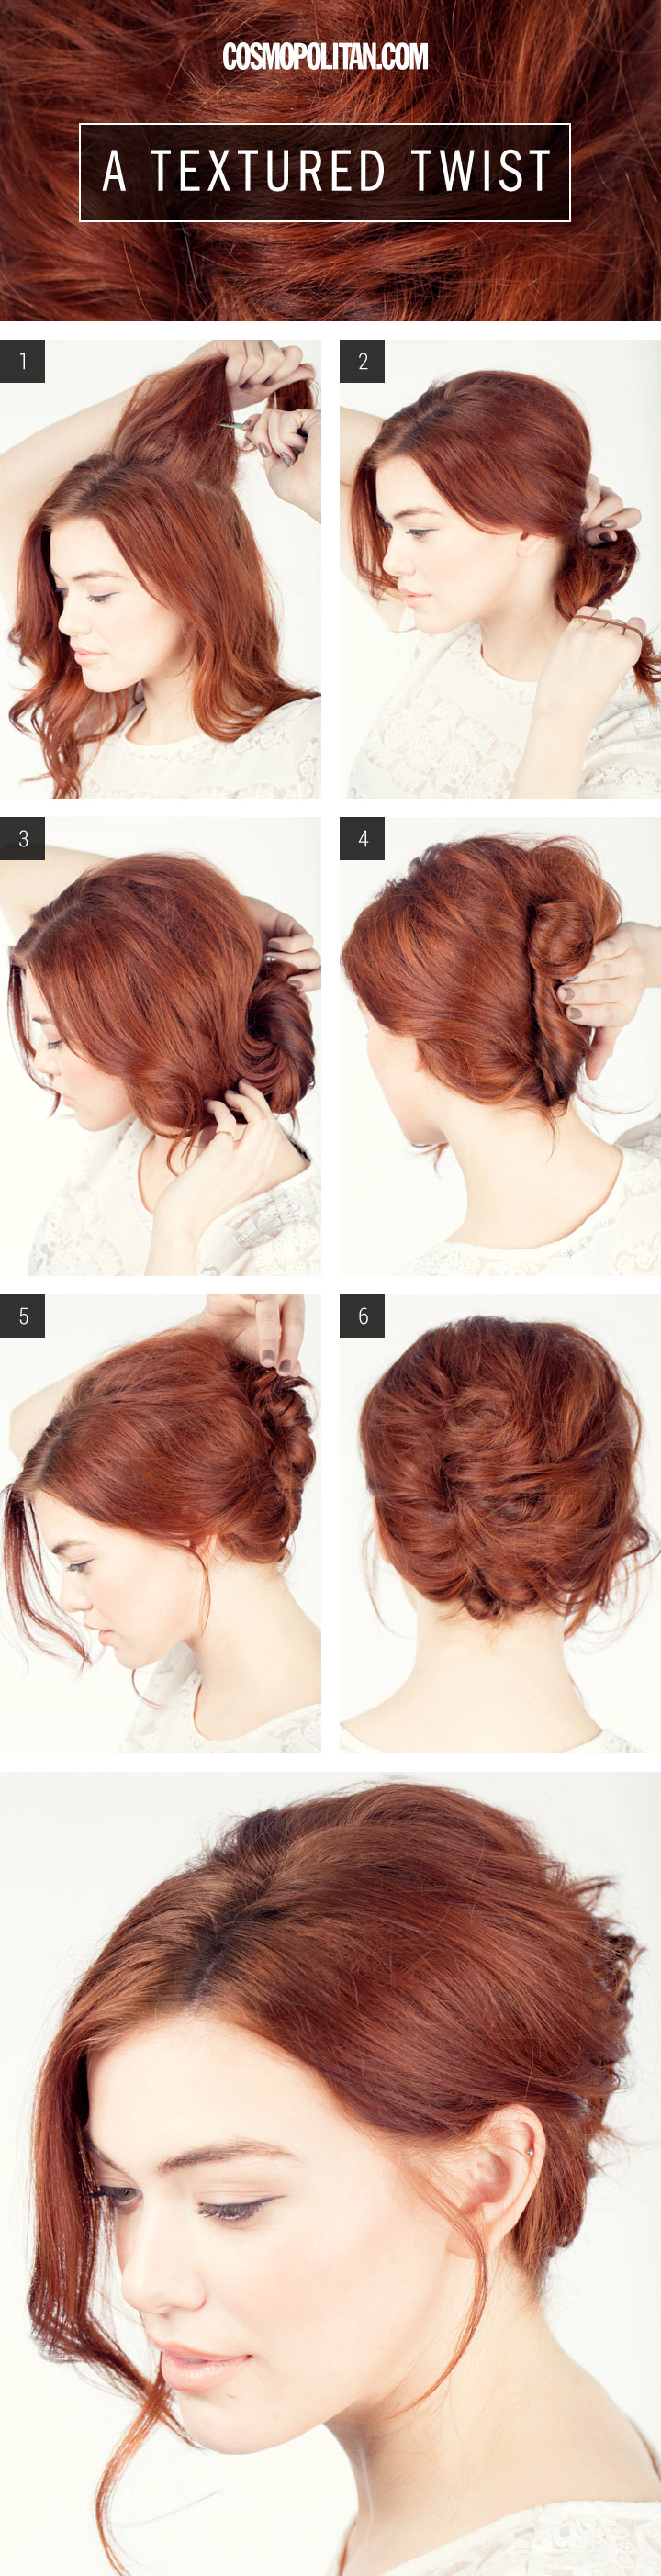 Messy updo hair pinterest messy updo updo and hair style